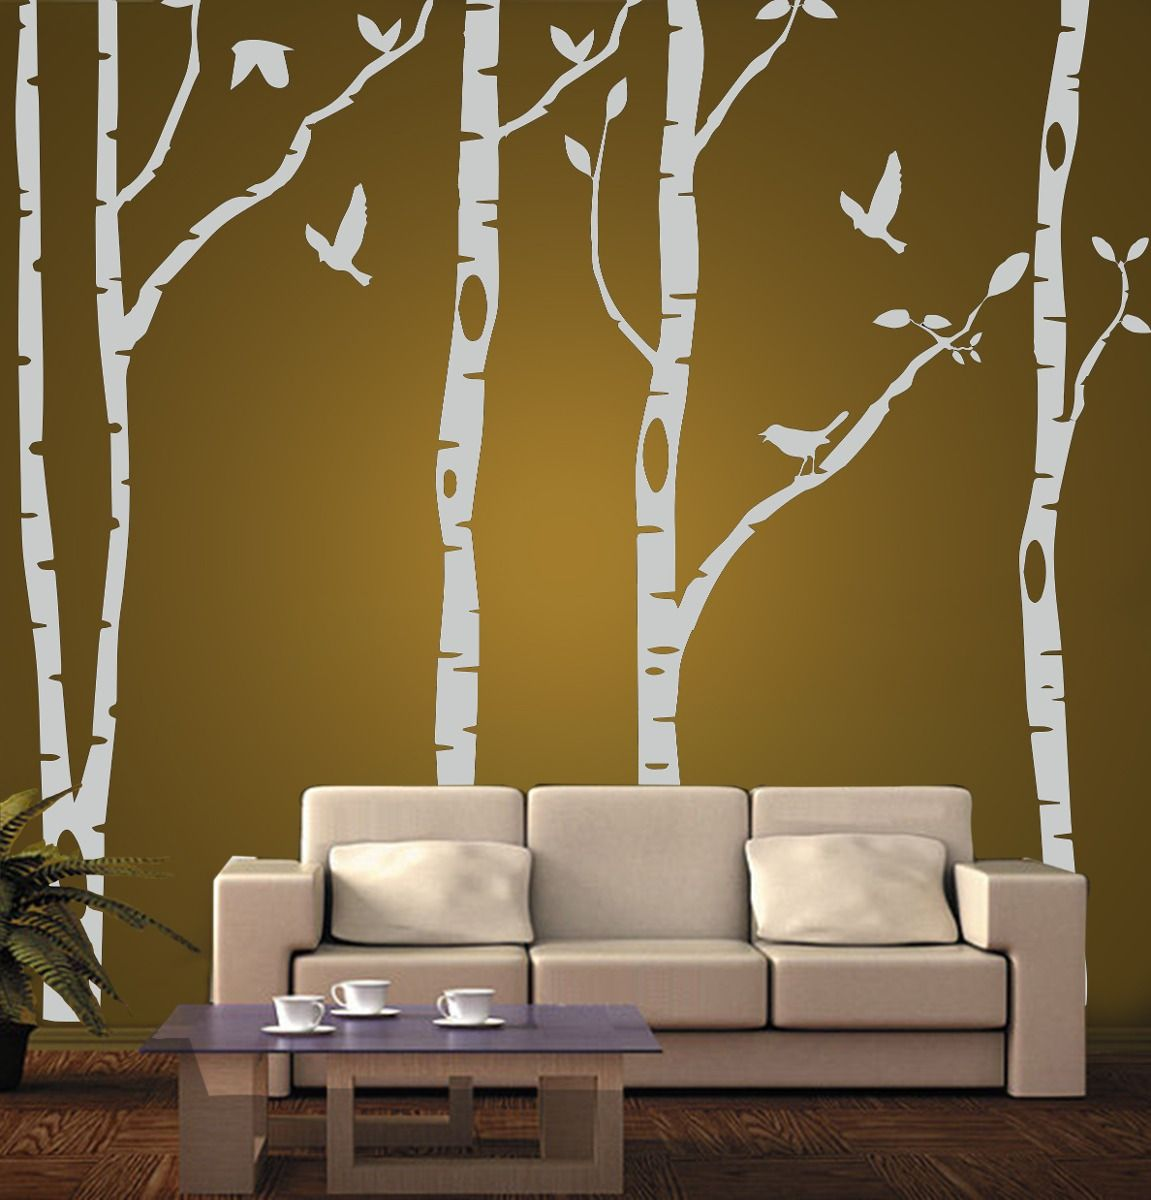 25 best ideas about vinilos de arboles on pinterest for Murales para decoracion